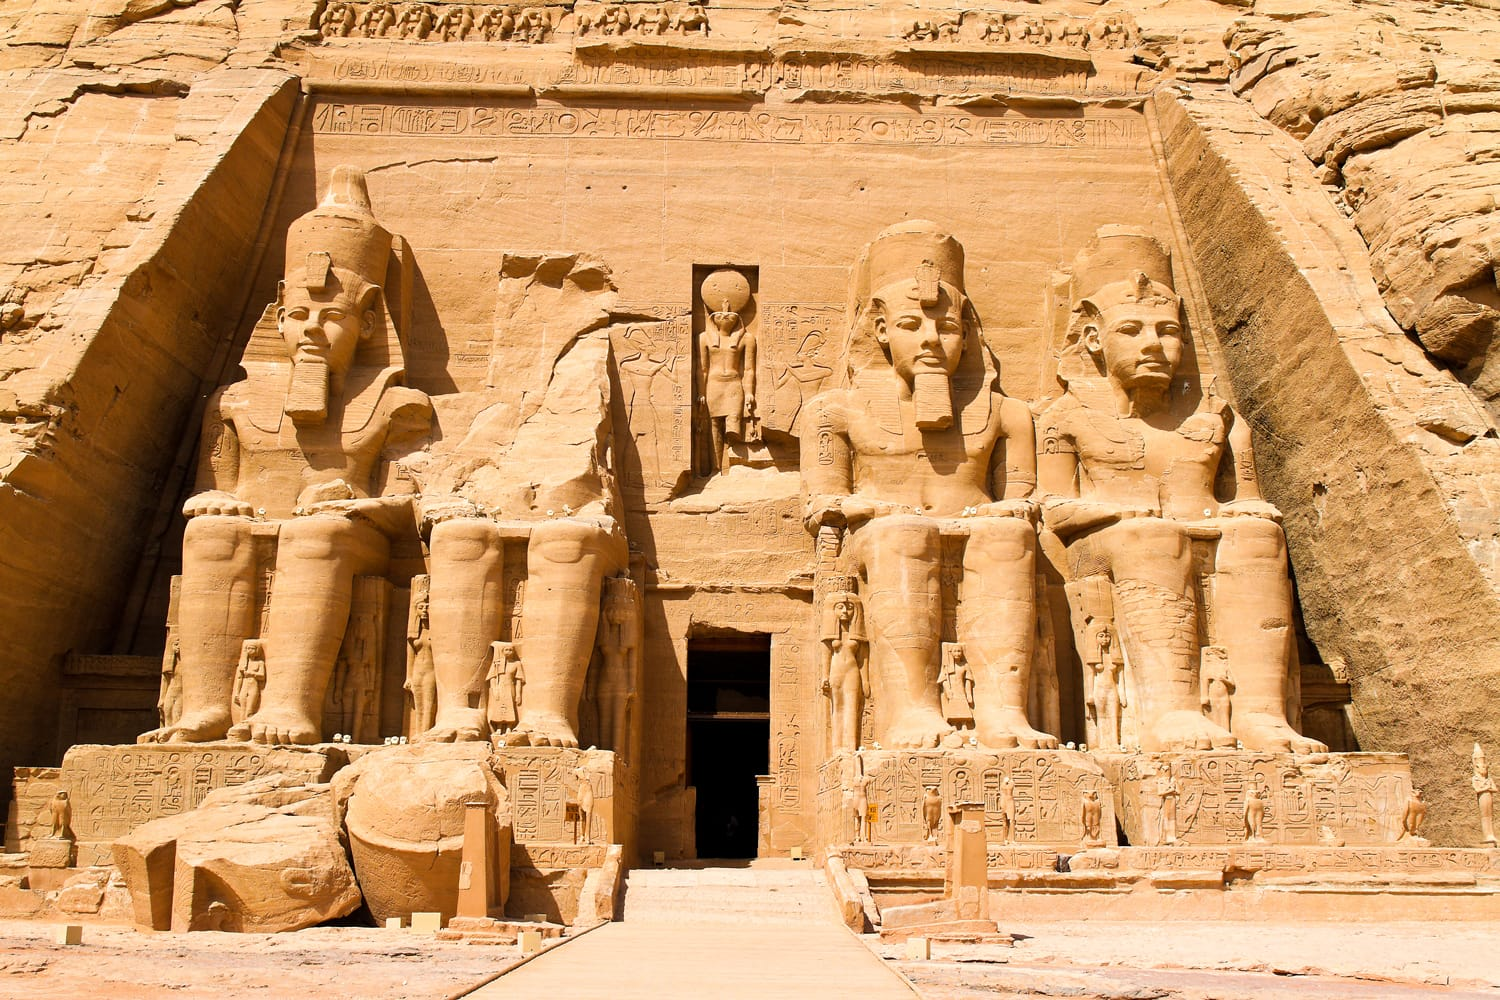 Abu Simbel in Egypt